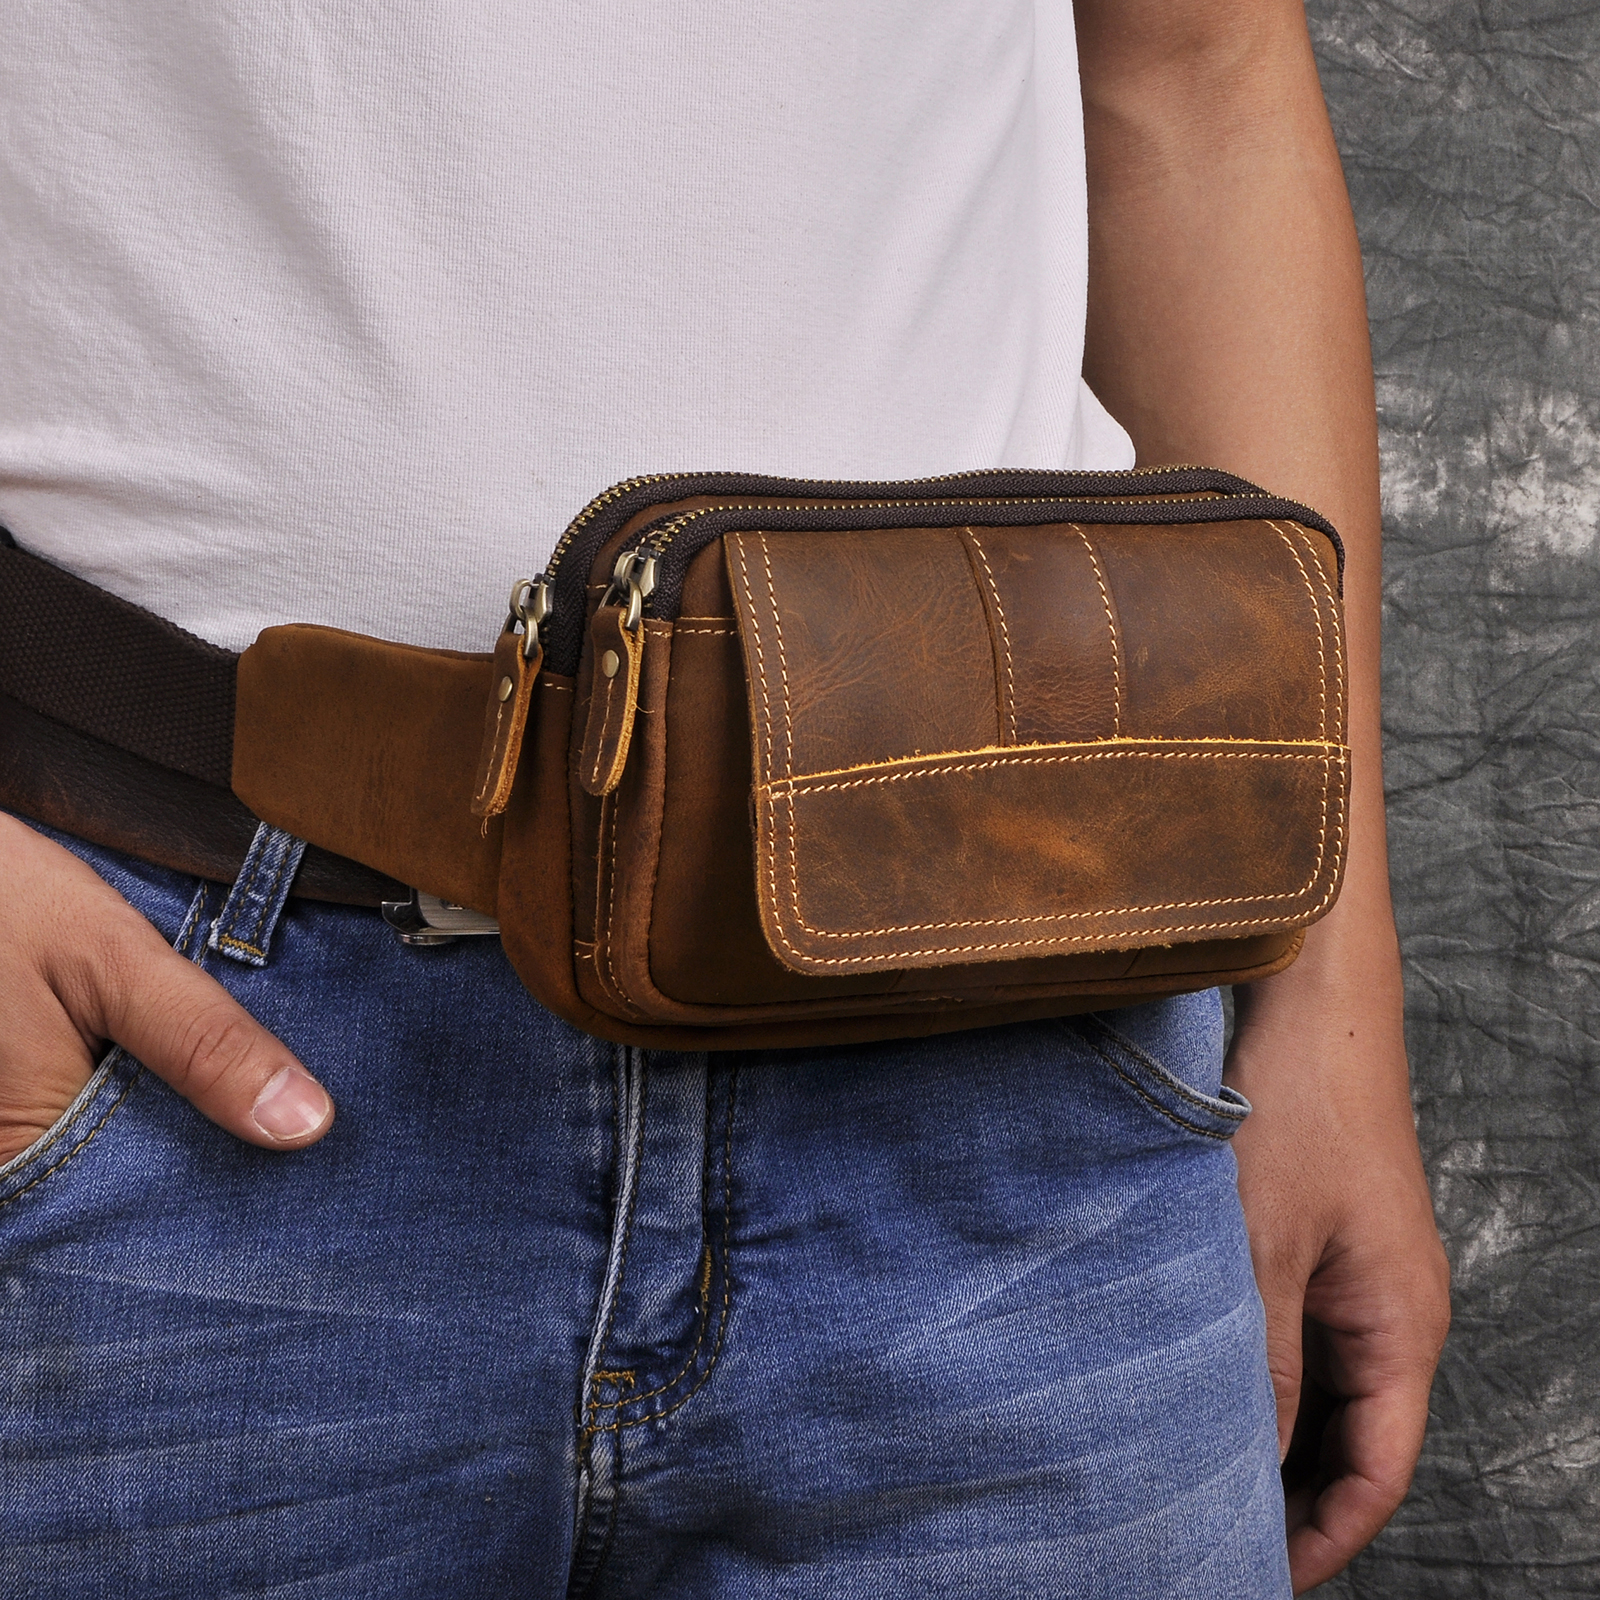 Quality Leather Men Casual Fashion Travel Crossbody Waist Belt Bag Chest Sling Bag Cowhide Design Phone Cigarette Pouch 341-b